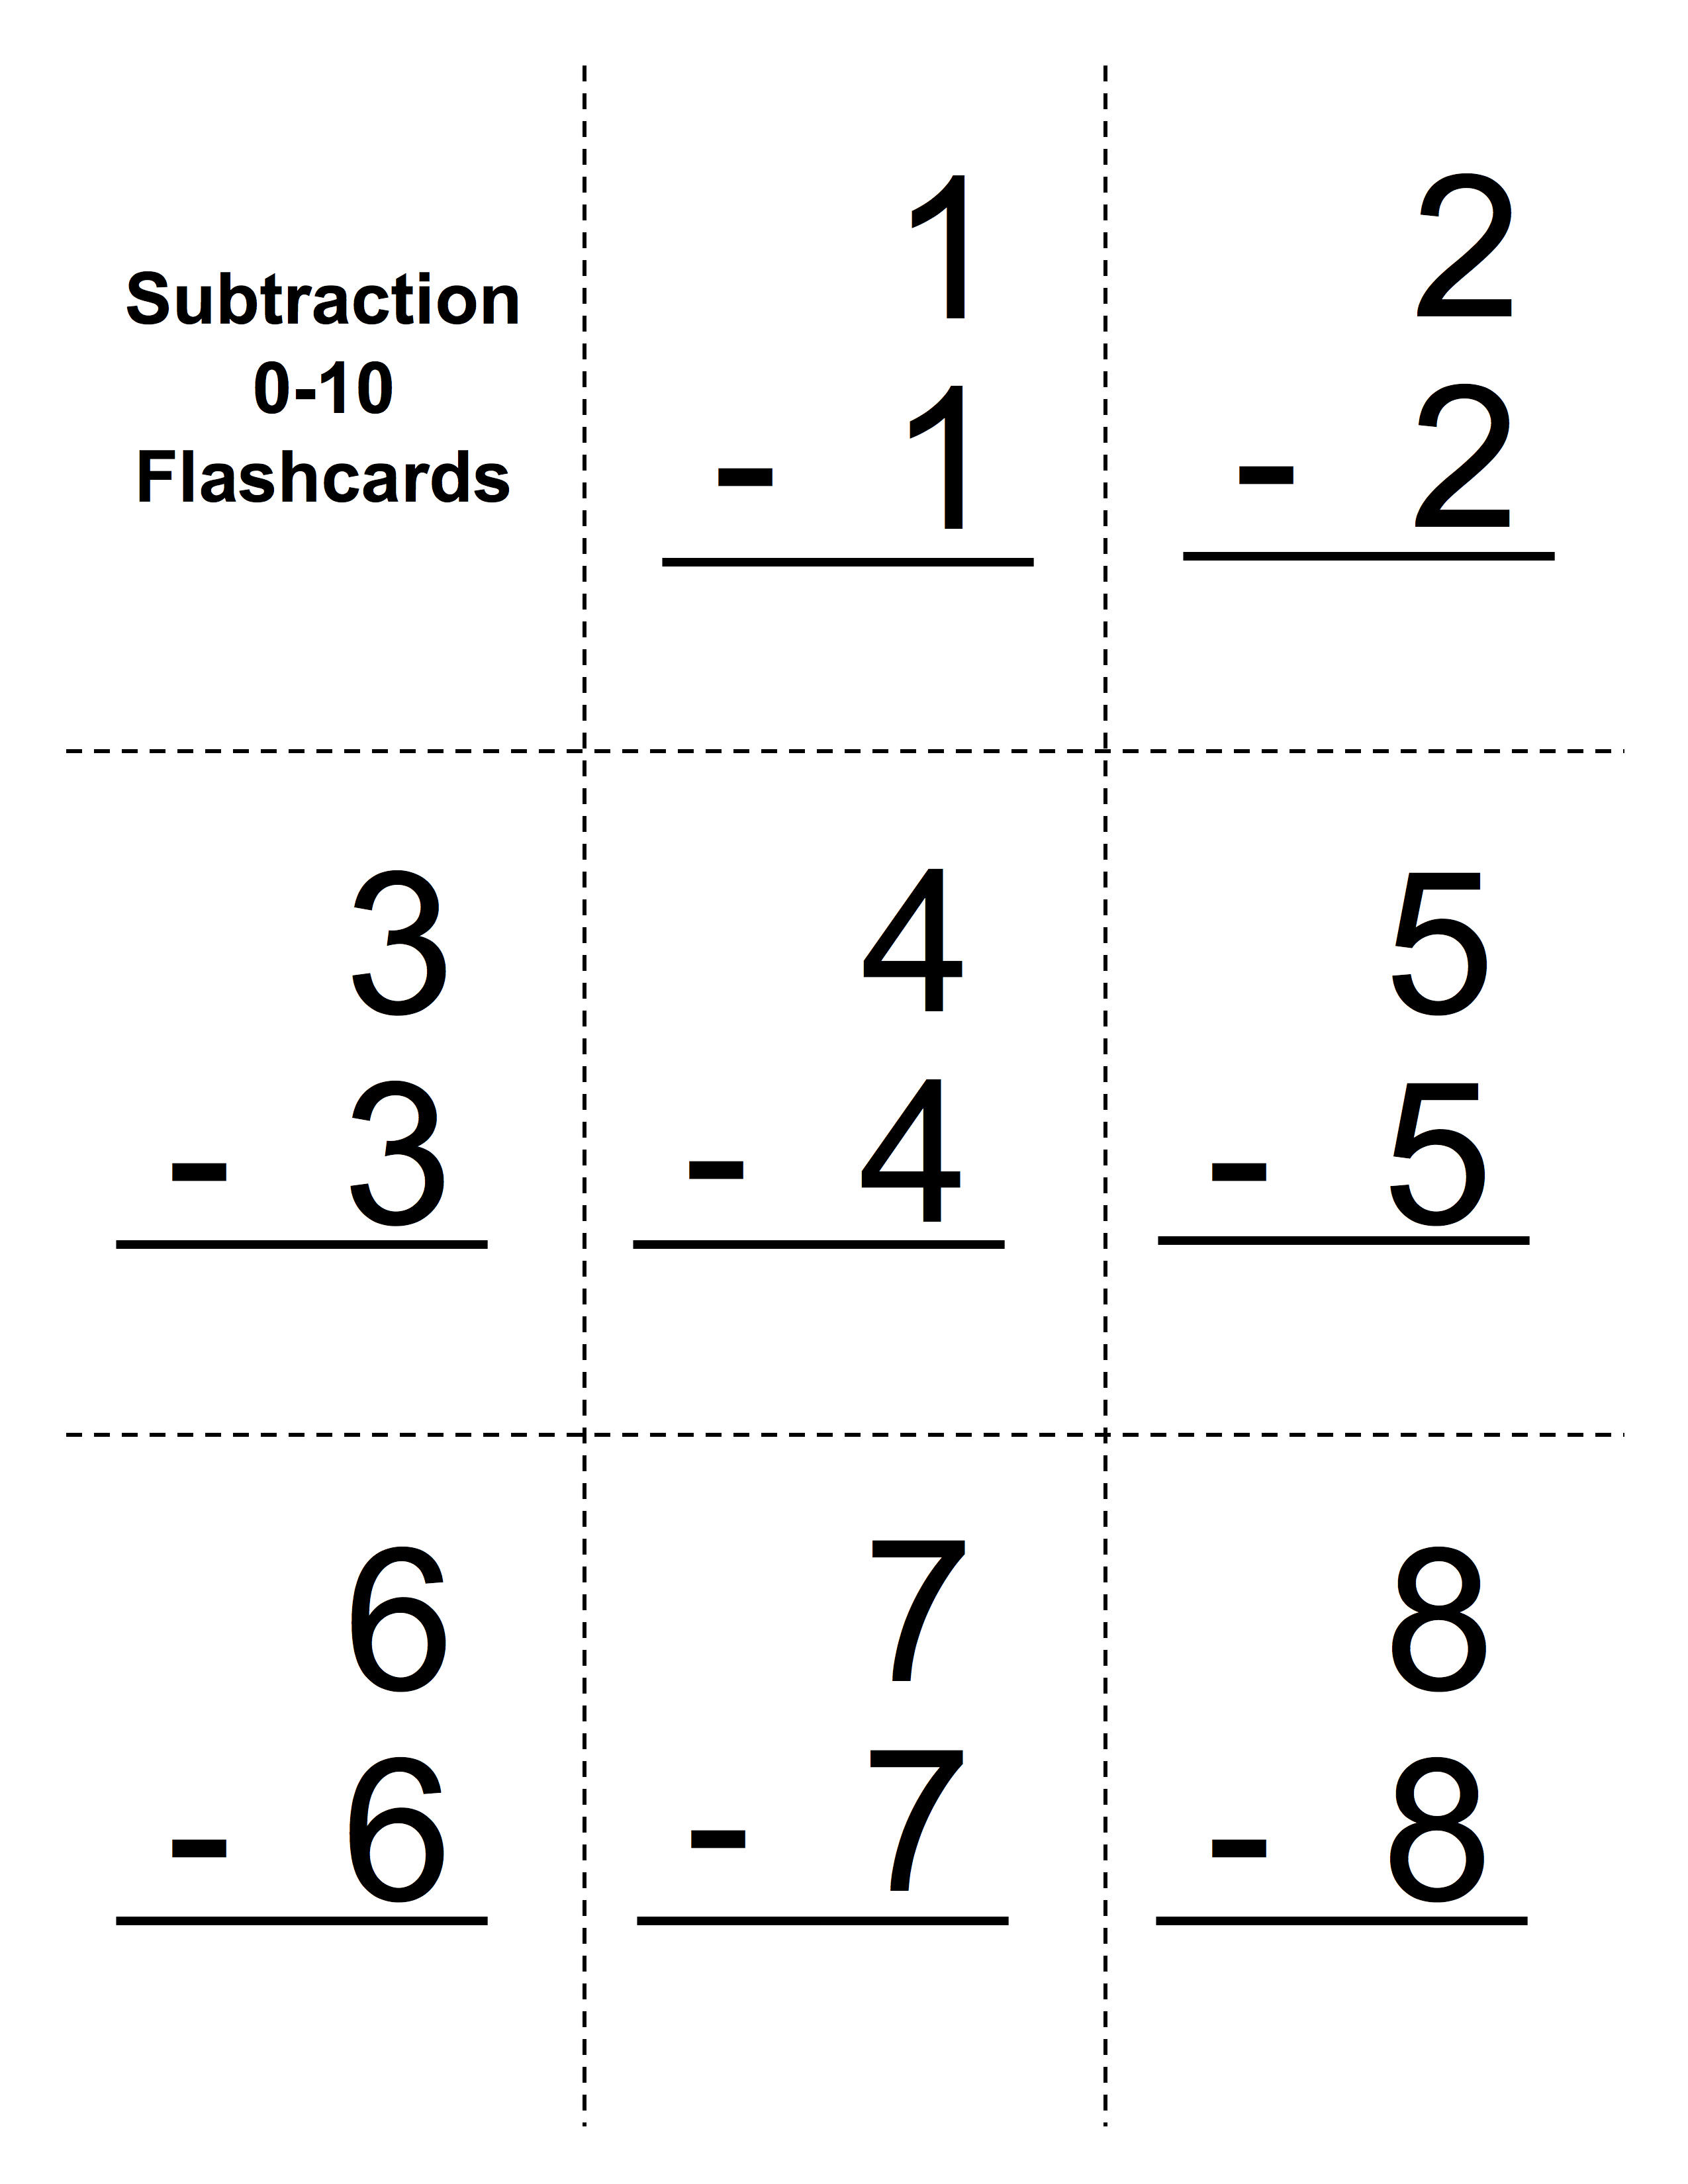 Challenger image for printable subtraction flash cards